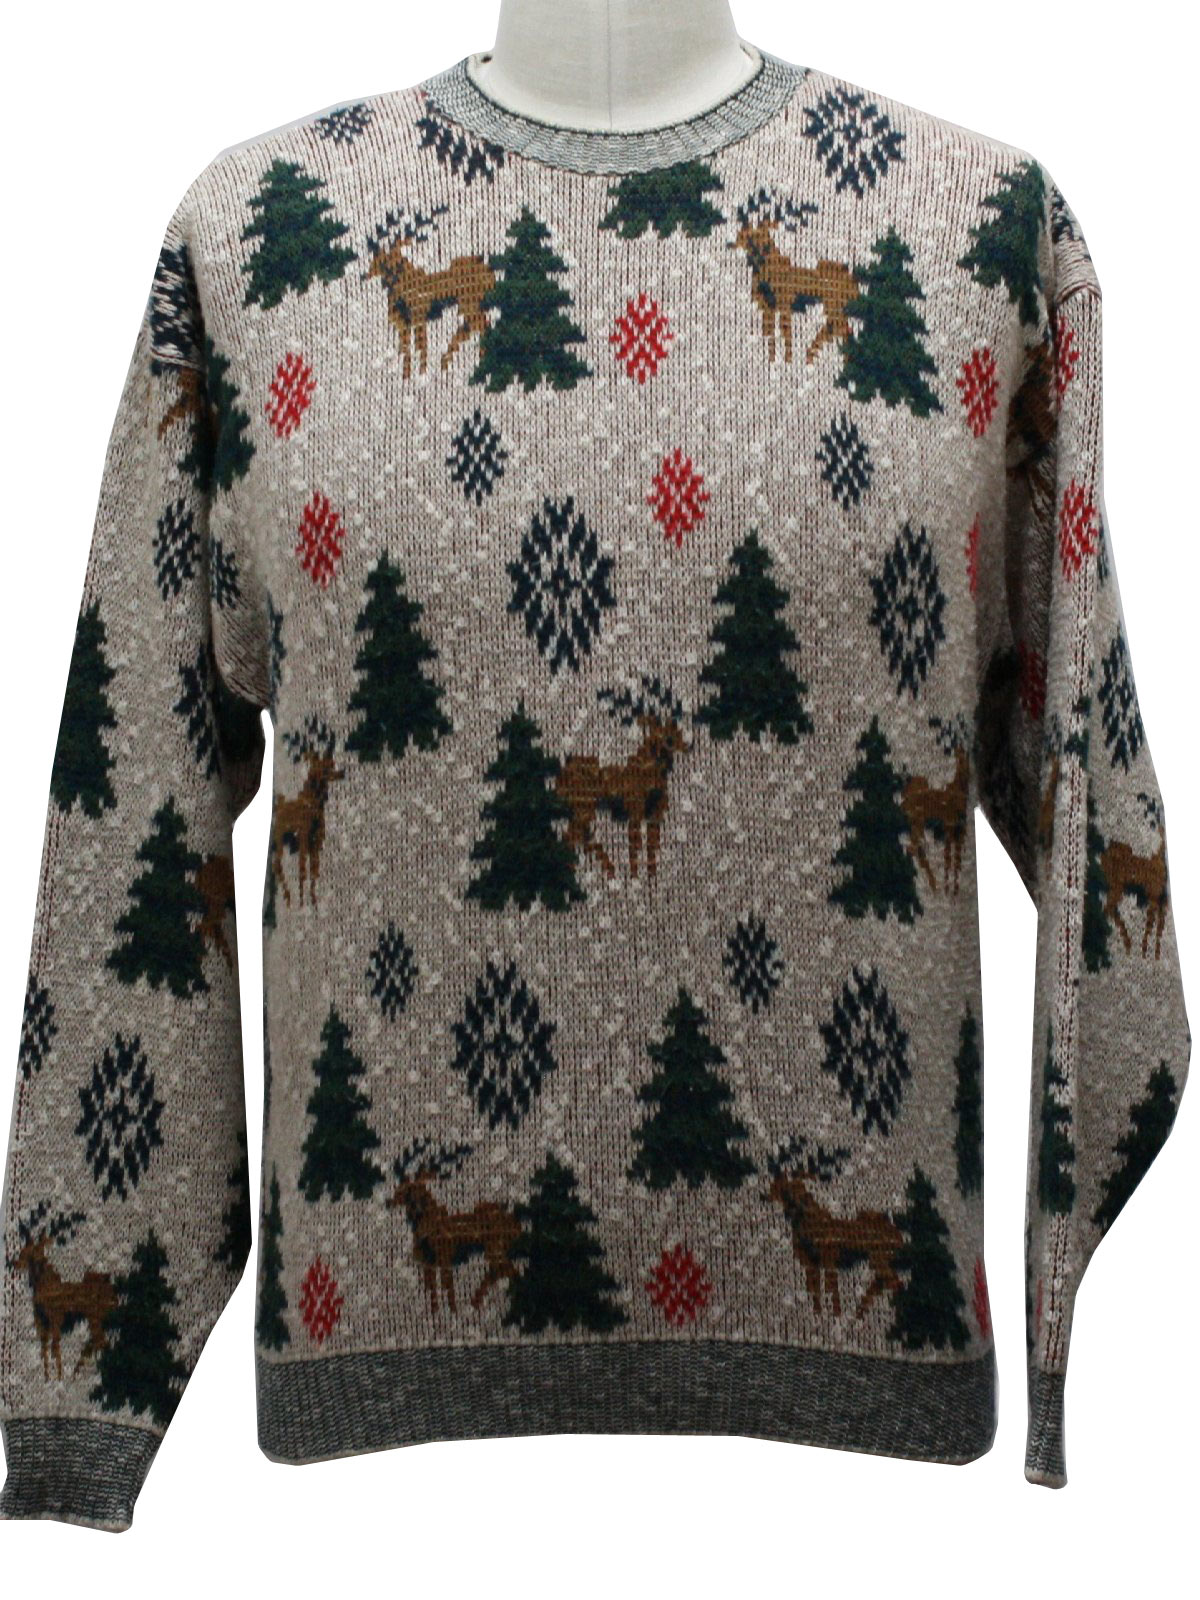 Vintage 1970s Mens Ugly Christmas Sweater Authentic 70s